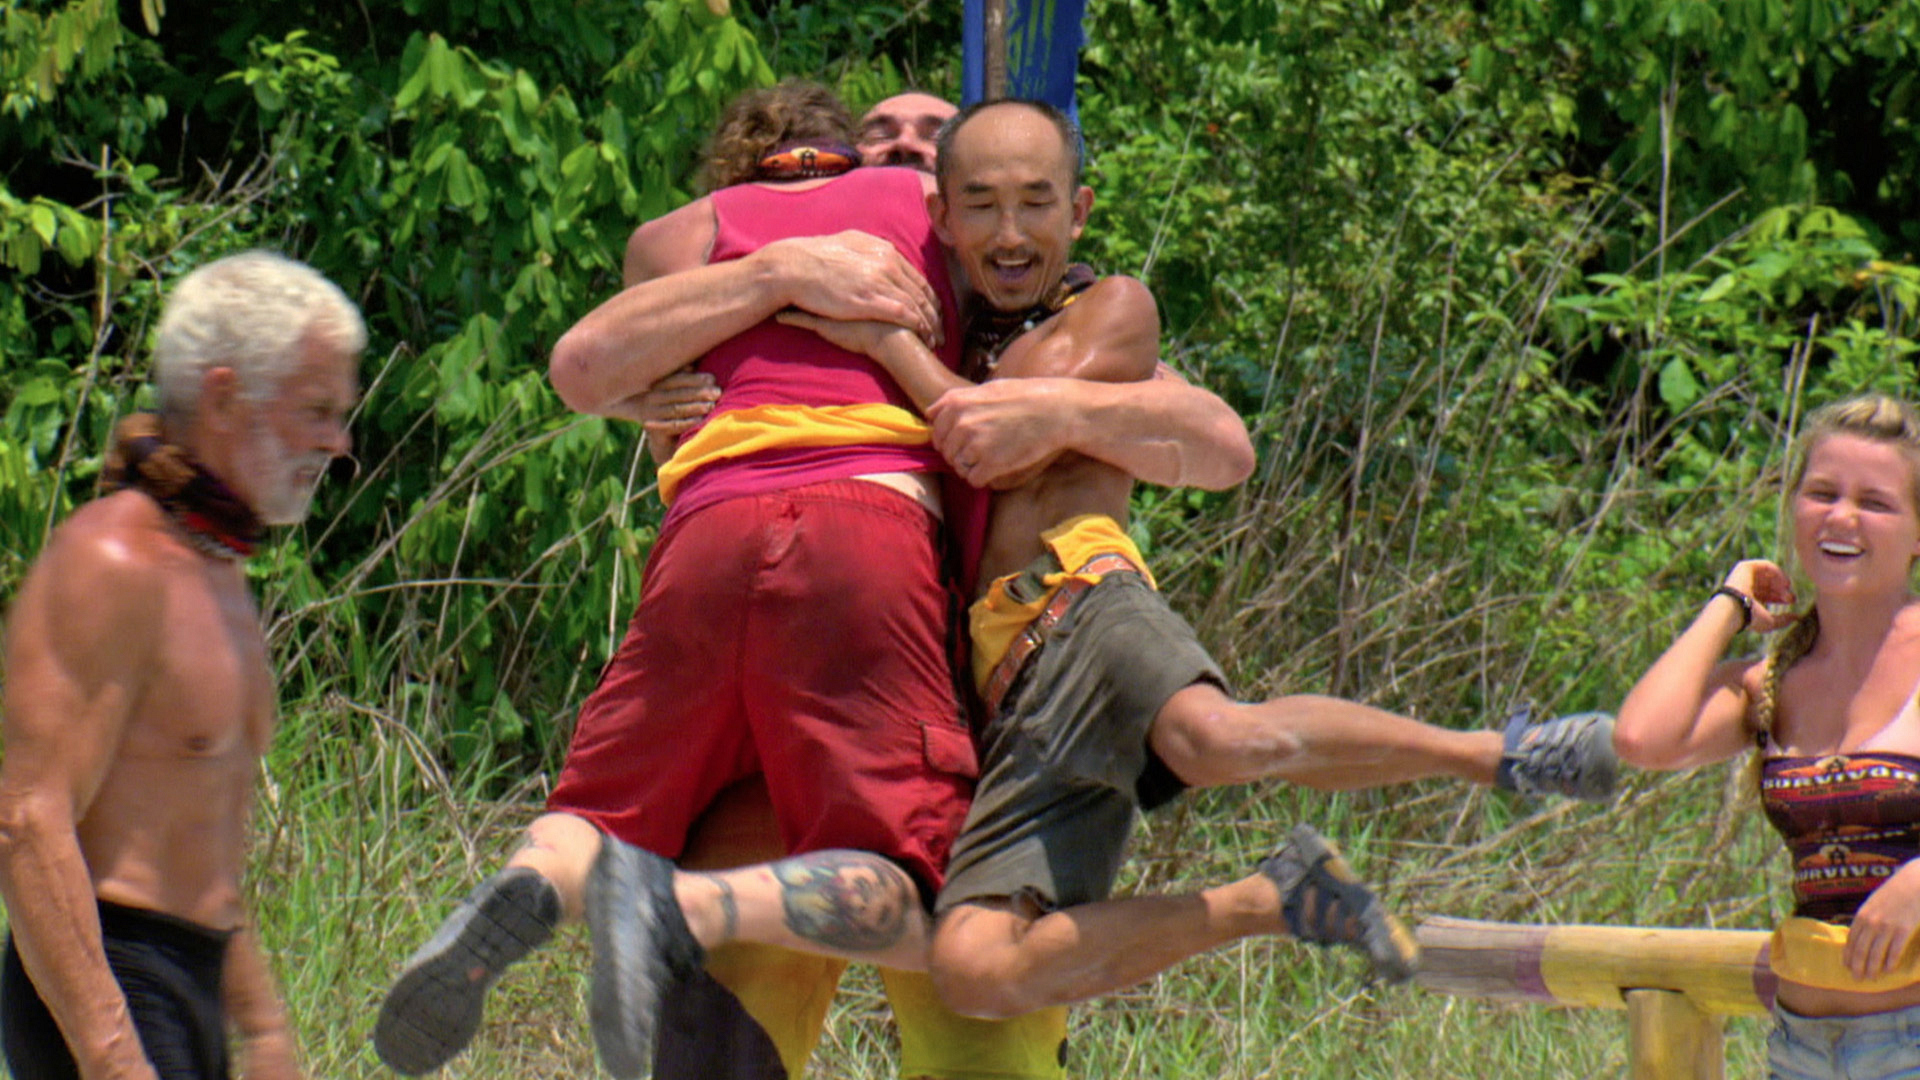 5. At this point, which castaway would you consider to be the best all around player, and why?